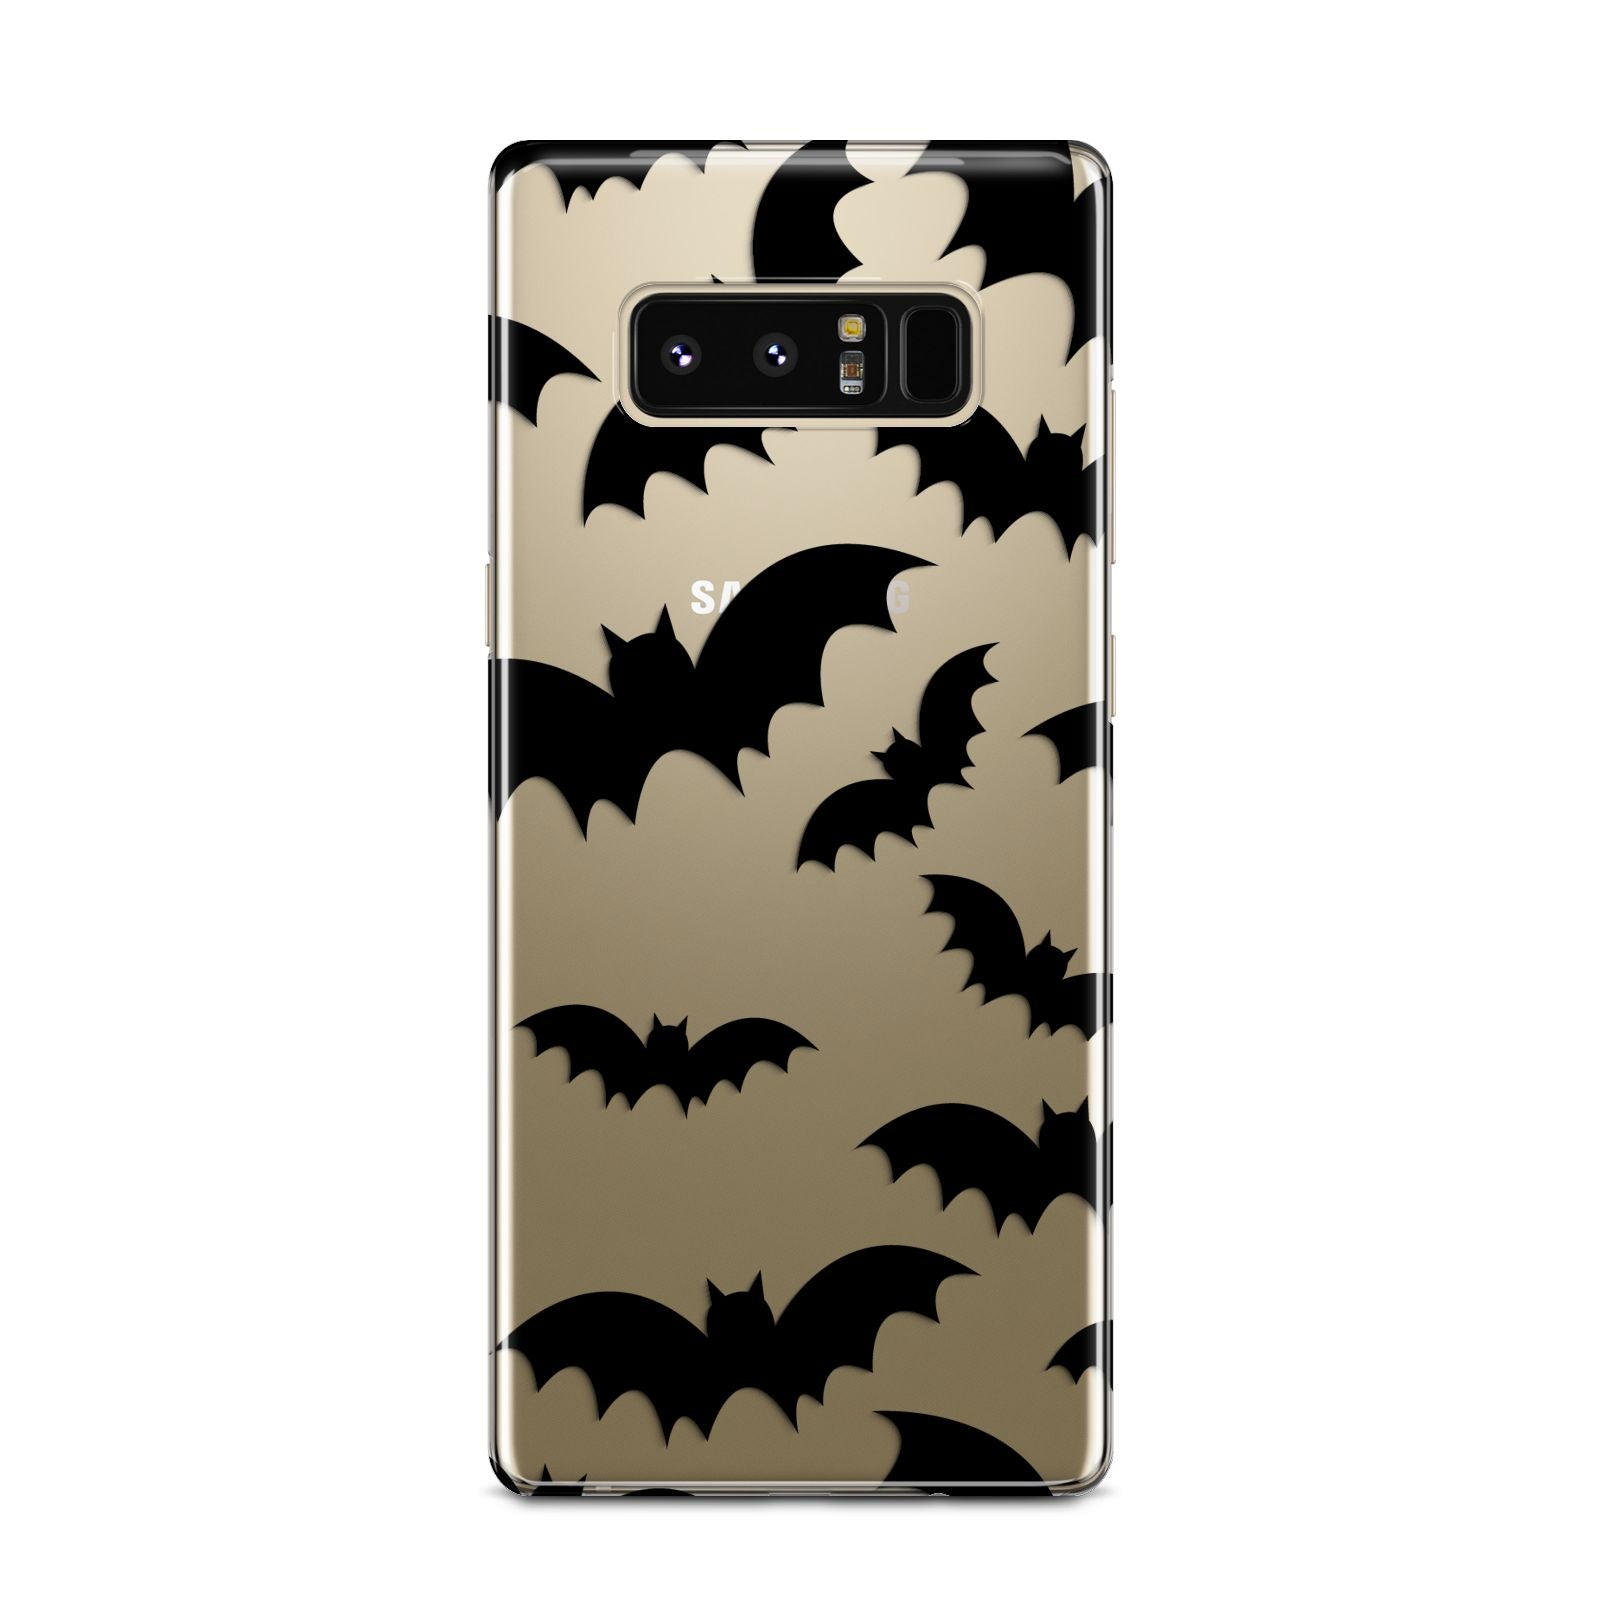 Bat Halloween Print Samsung Galaxy Note 8 Case